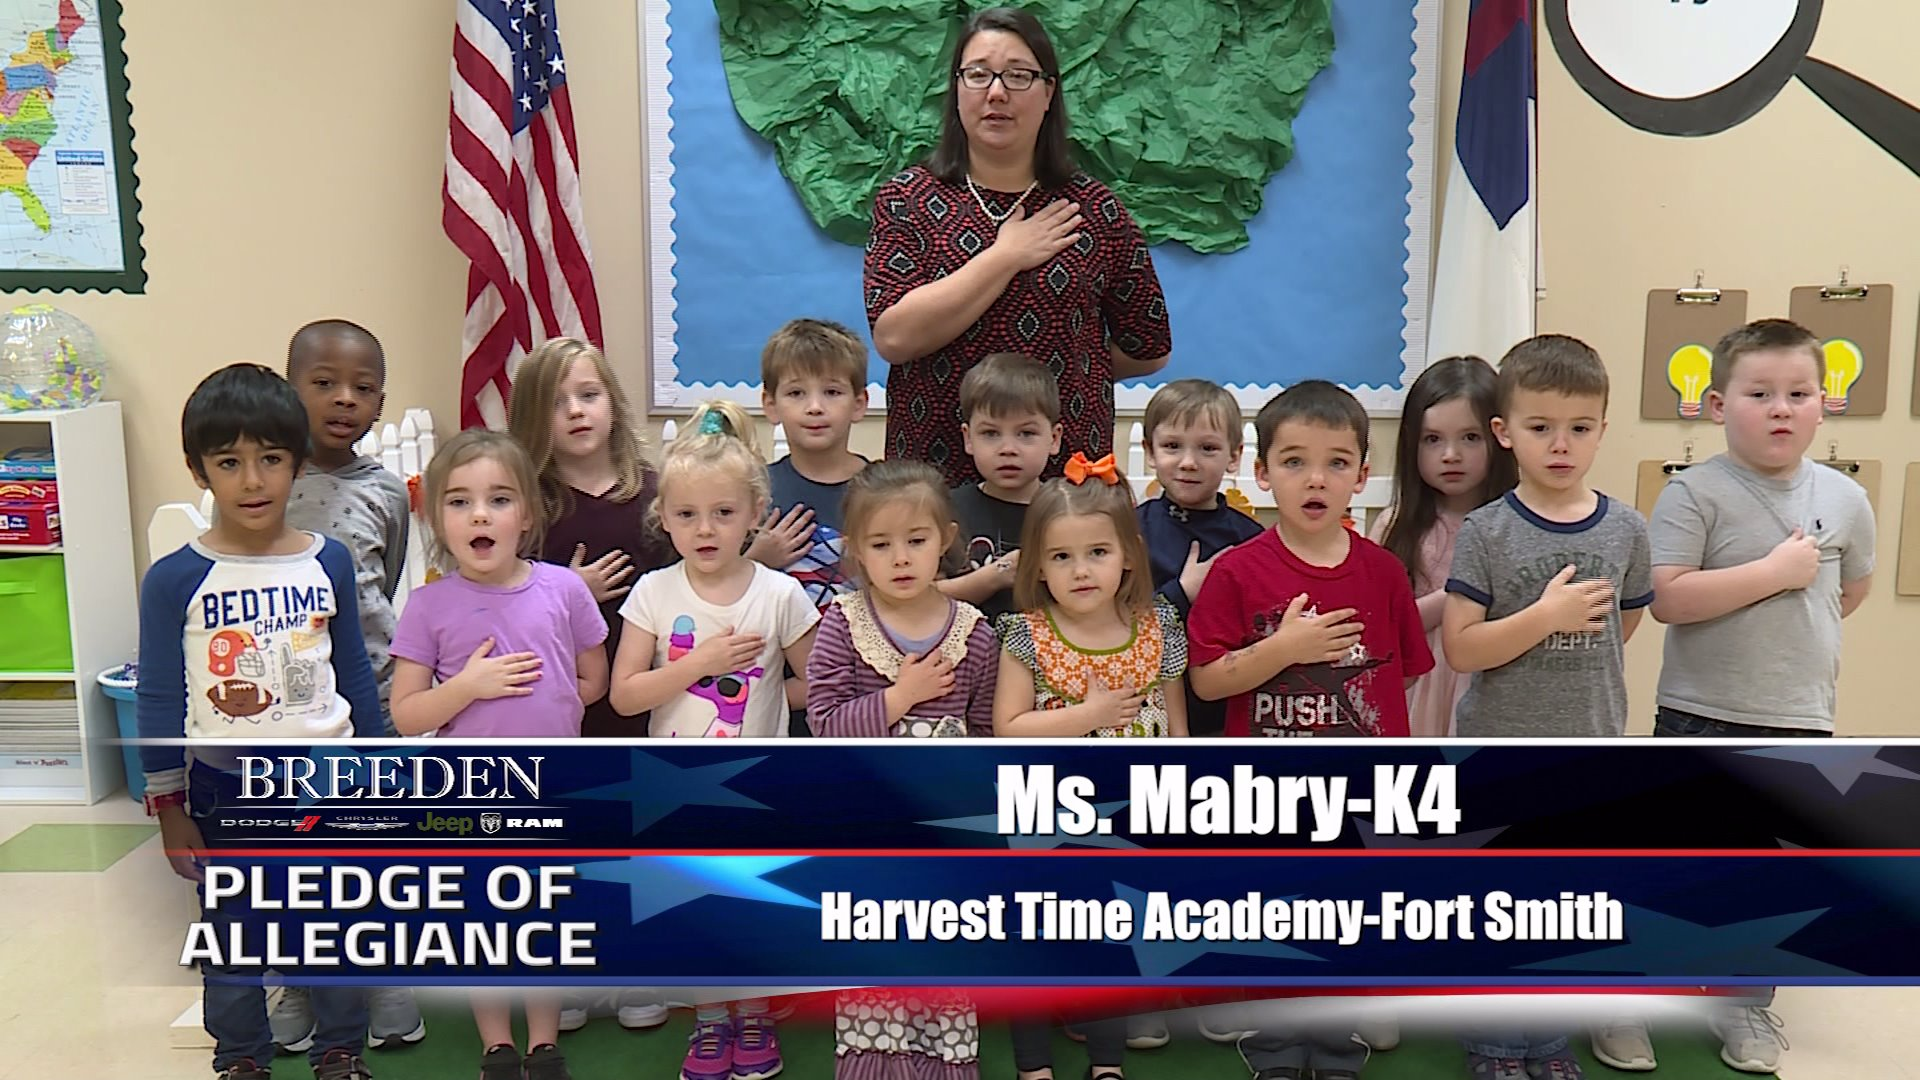 Ms. Mabry – K4 Harvest Time Academy, Fort Smith